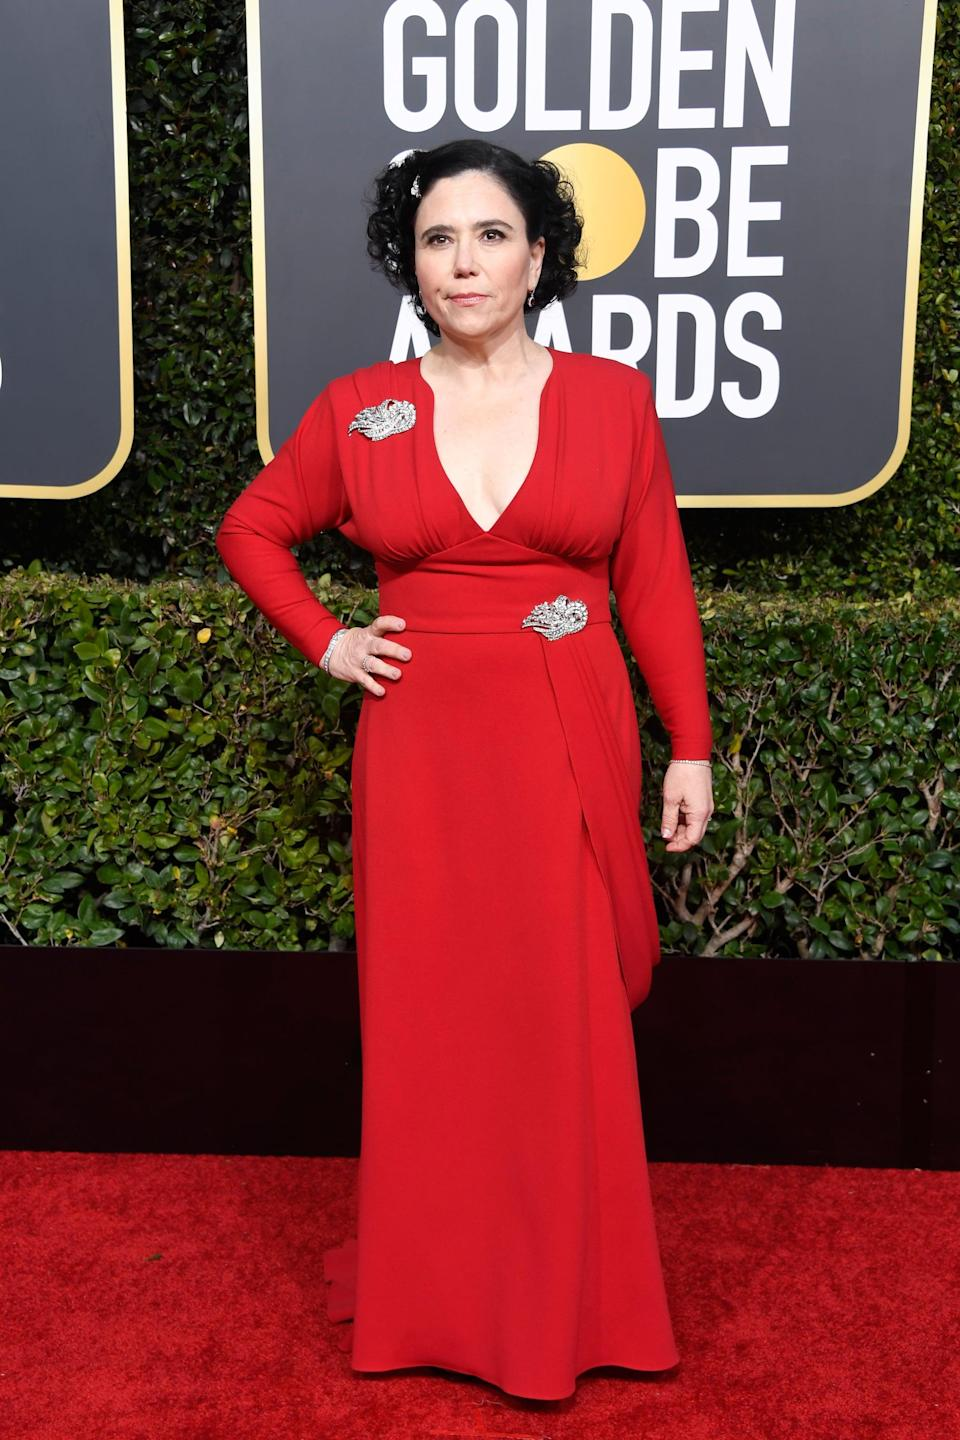 <p>Wearing a red dress with brooches.</p>